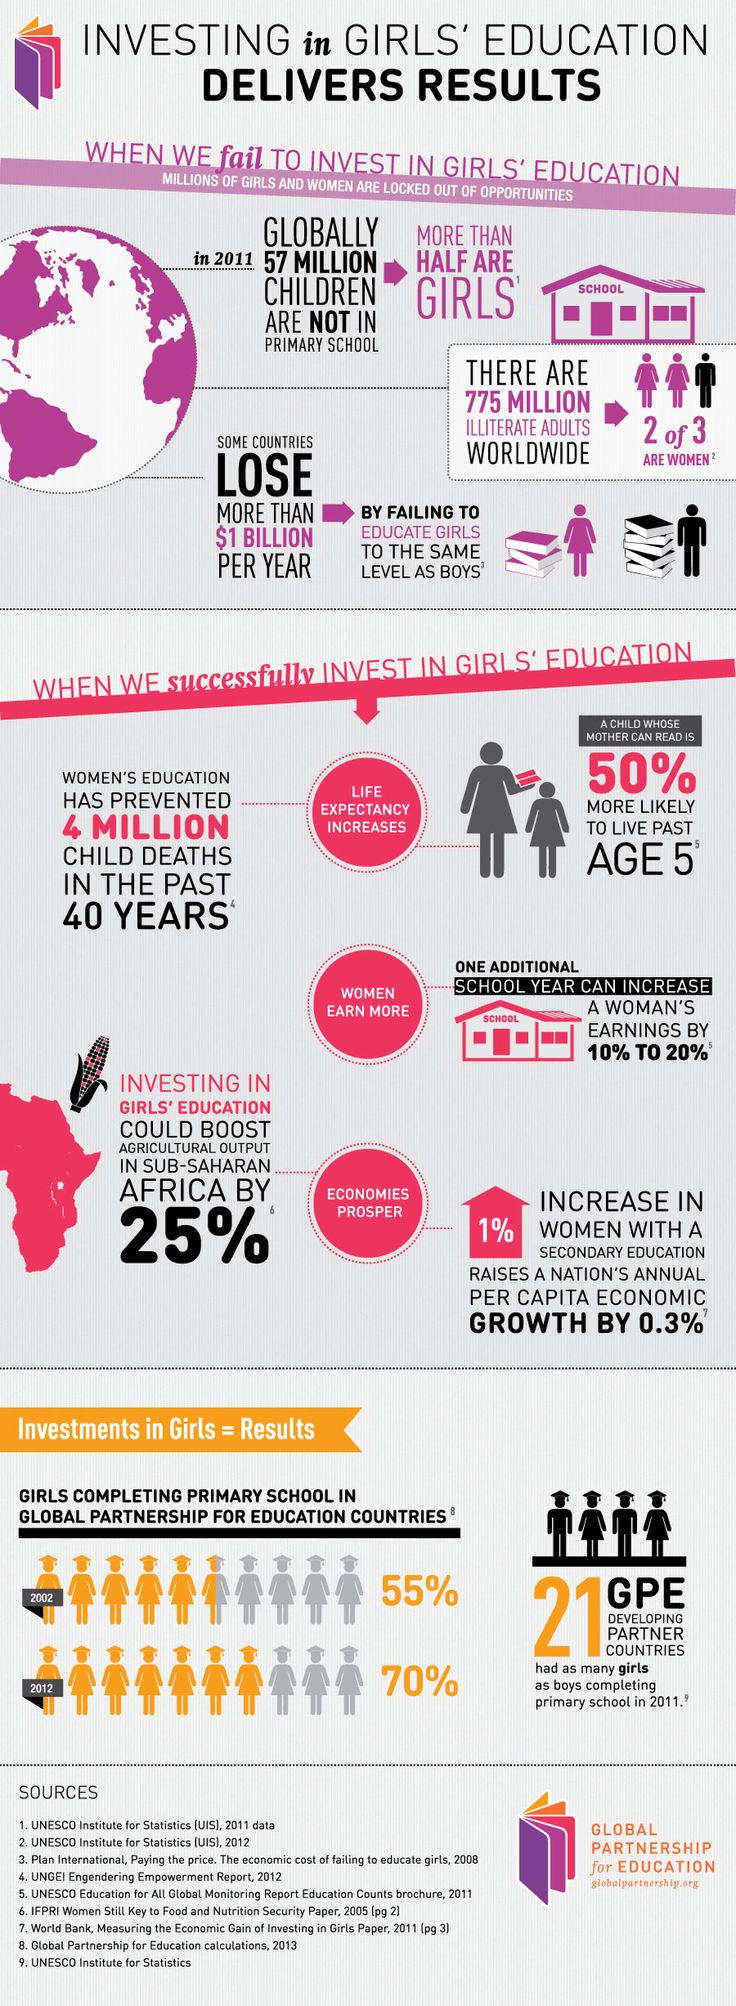 Girls' Education Infographic. Investing in Girls' Education Delivers Results